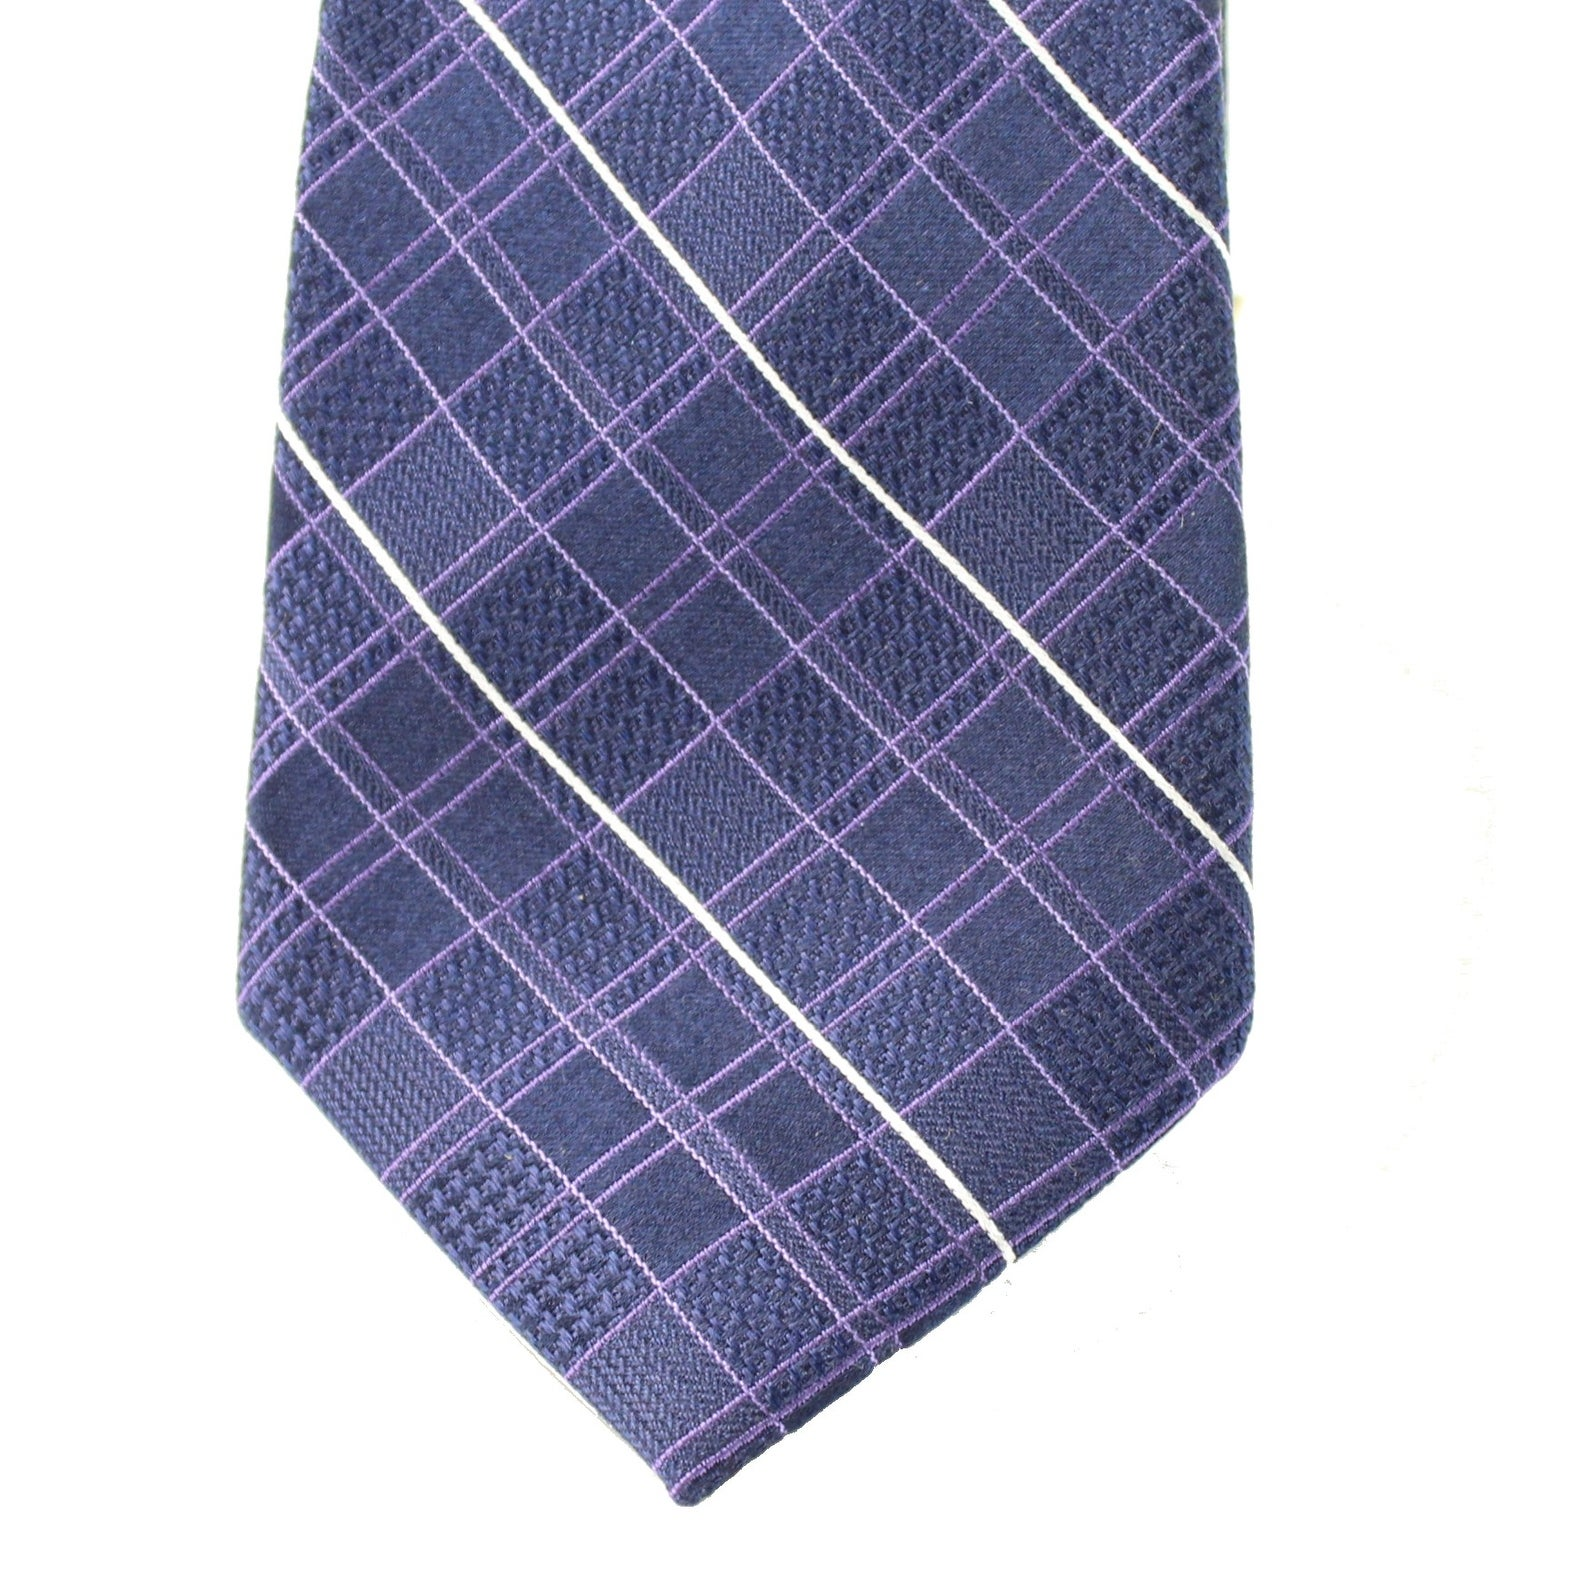 8c3ad282df90 Shop Michael Kors NEW Navy Blue Men's Classic Plaid Print Silk Neck Tie -  Free Shipping On Orders Over $45 - Overstock - 19435406